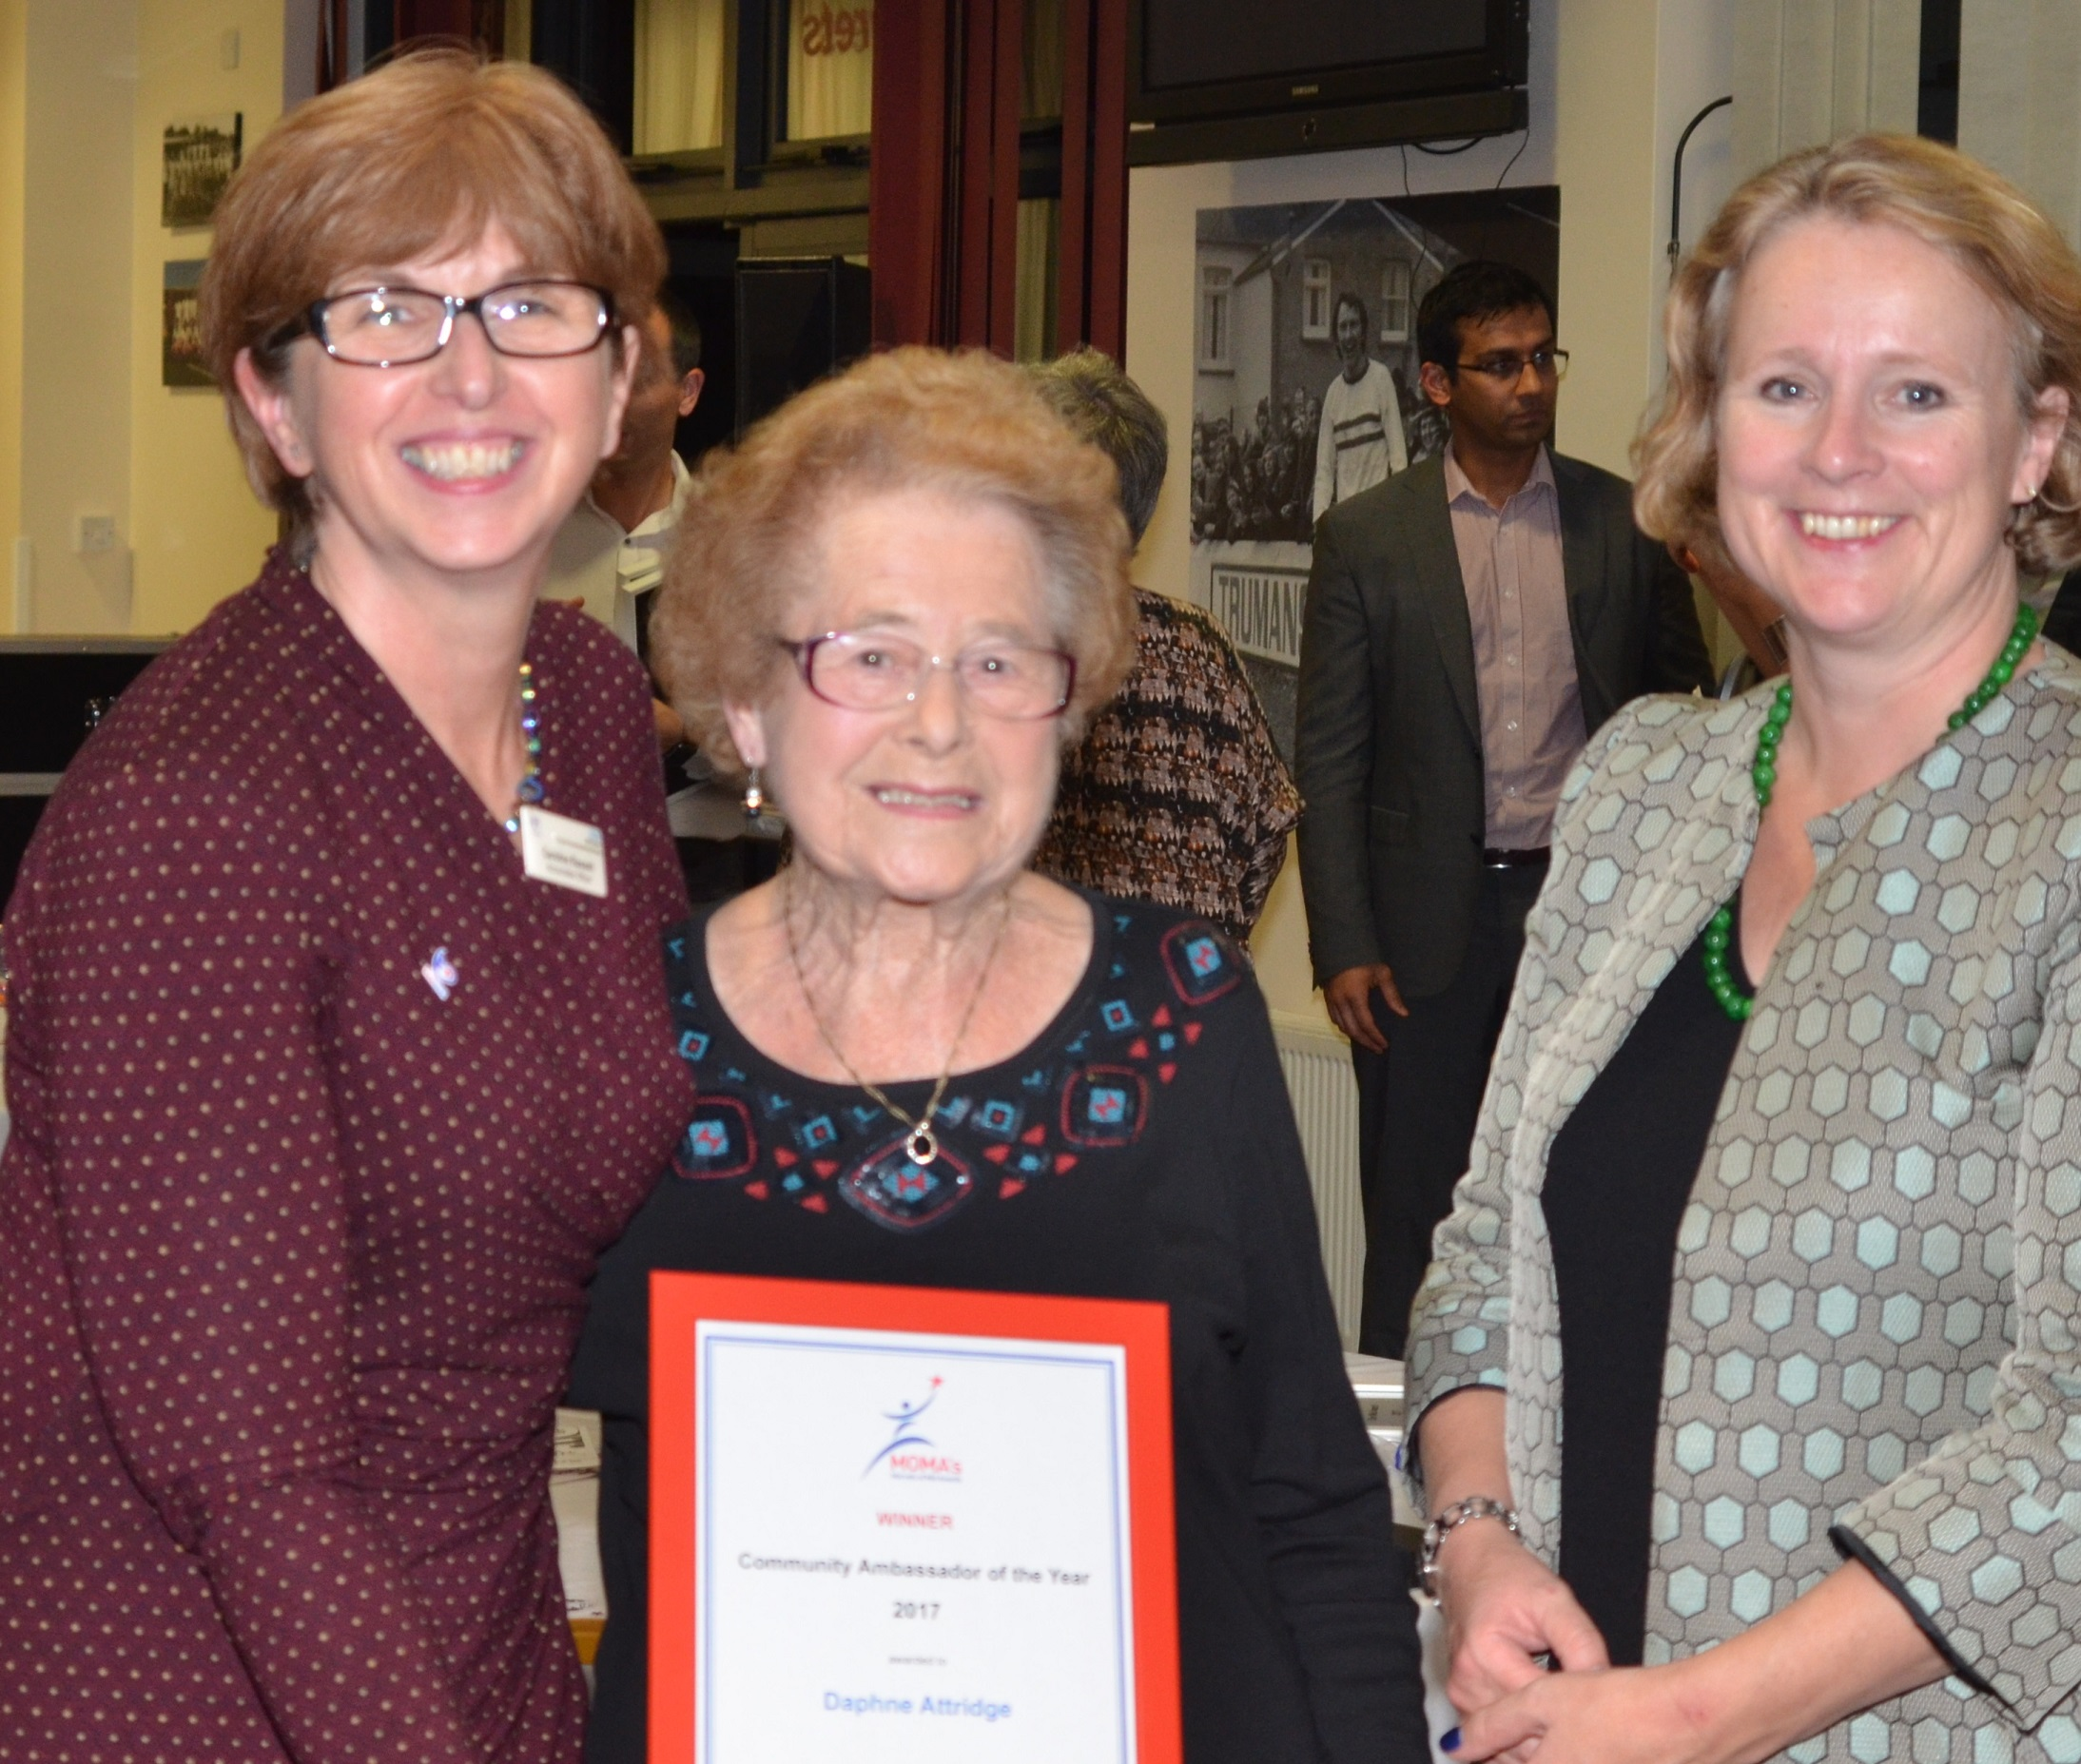 Community Ambassador winner Daphne Attridge with MECCG AO Caroline Rassell and Chelmsford MP Vicky Ford